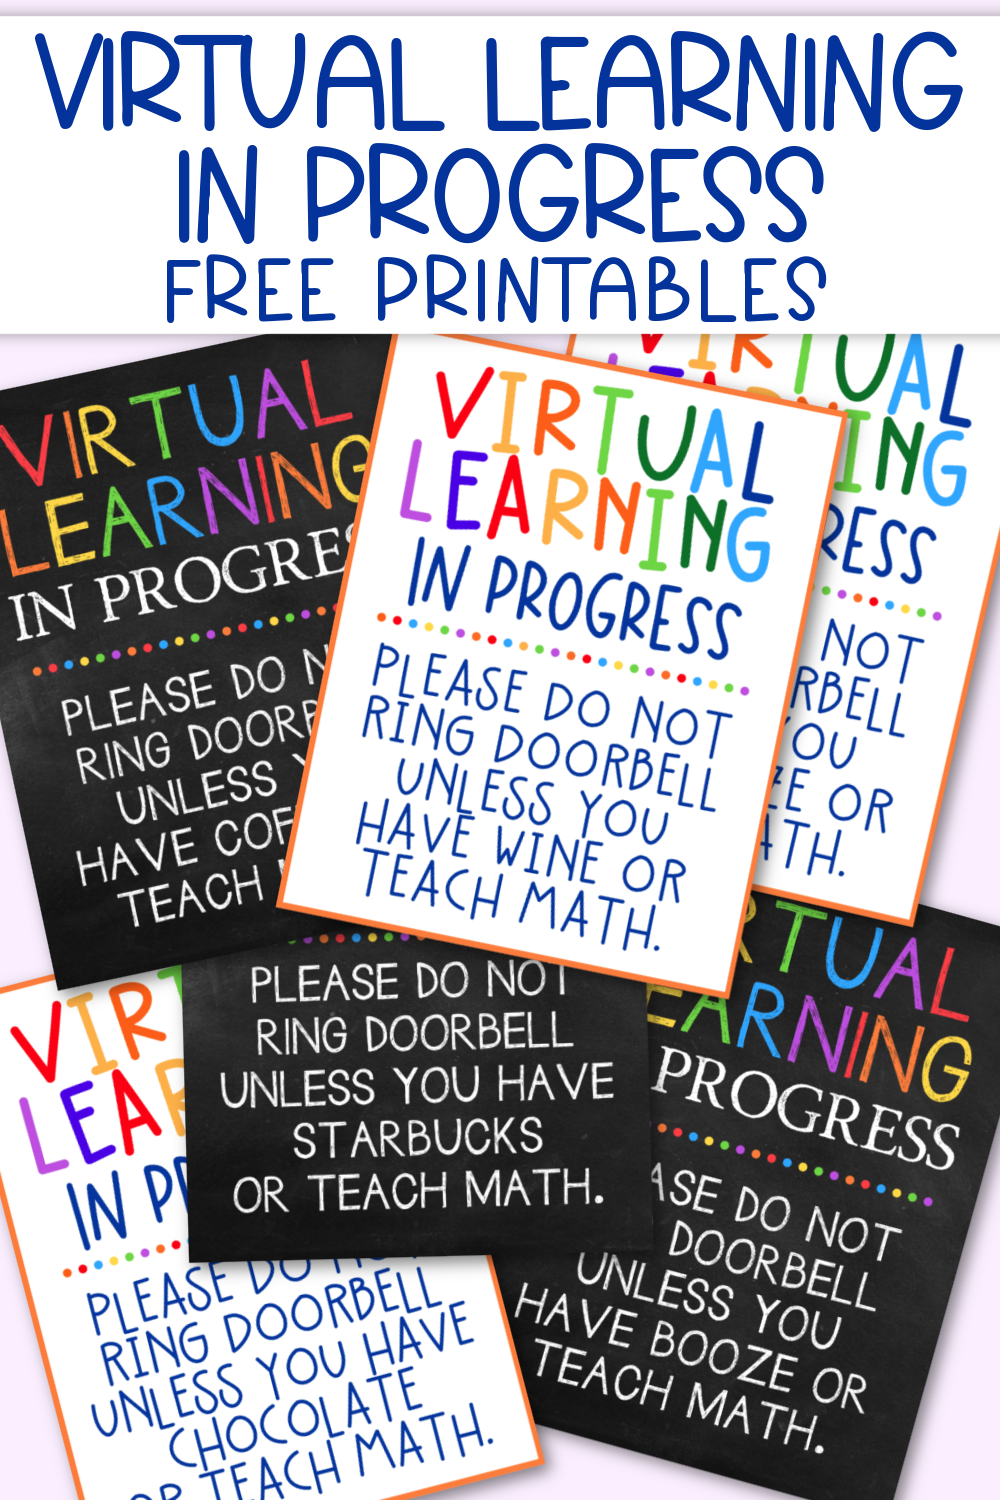 Virtual Learning in Progress Free Printables